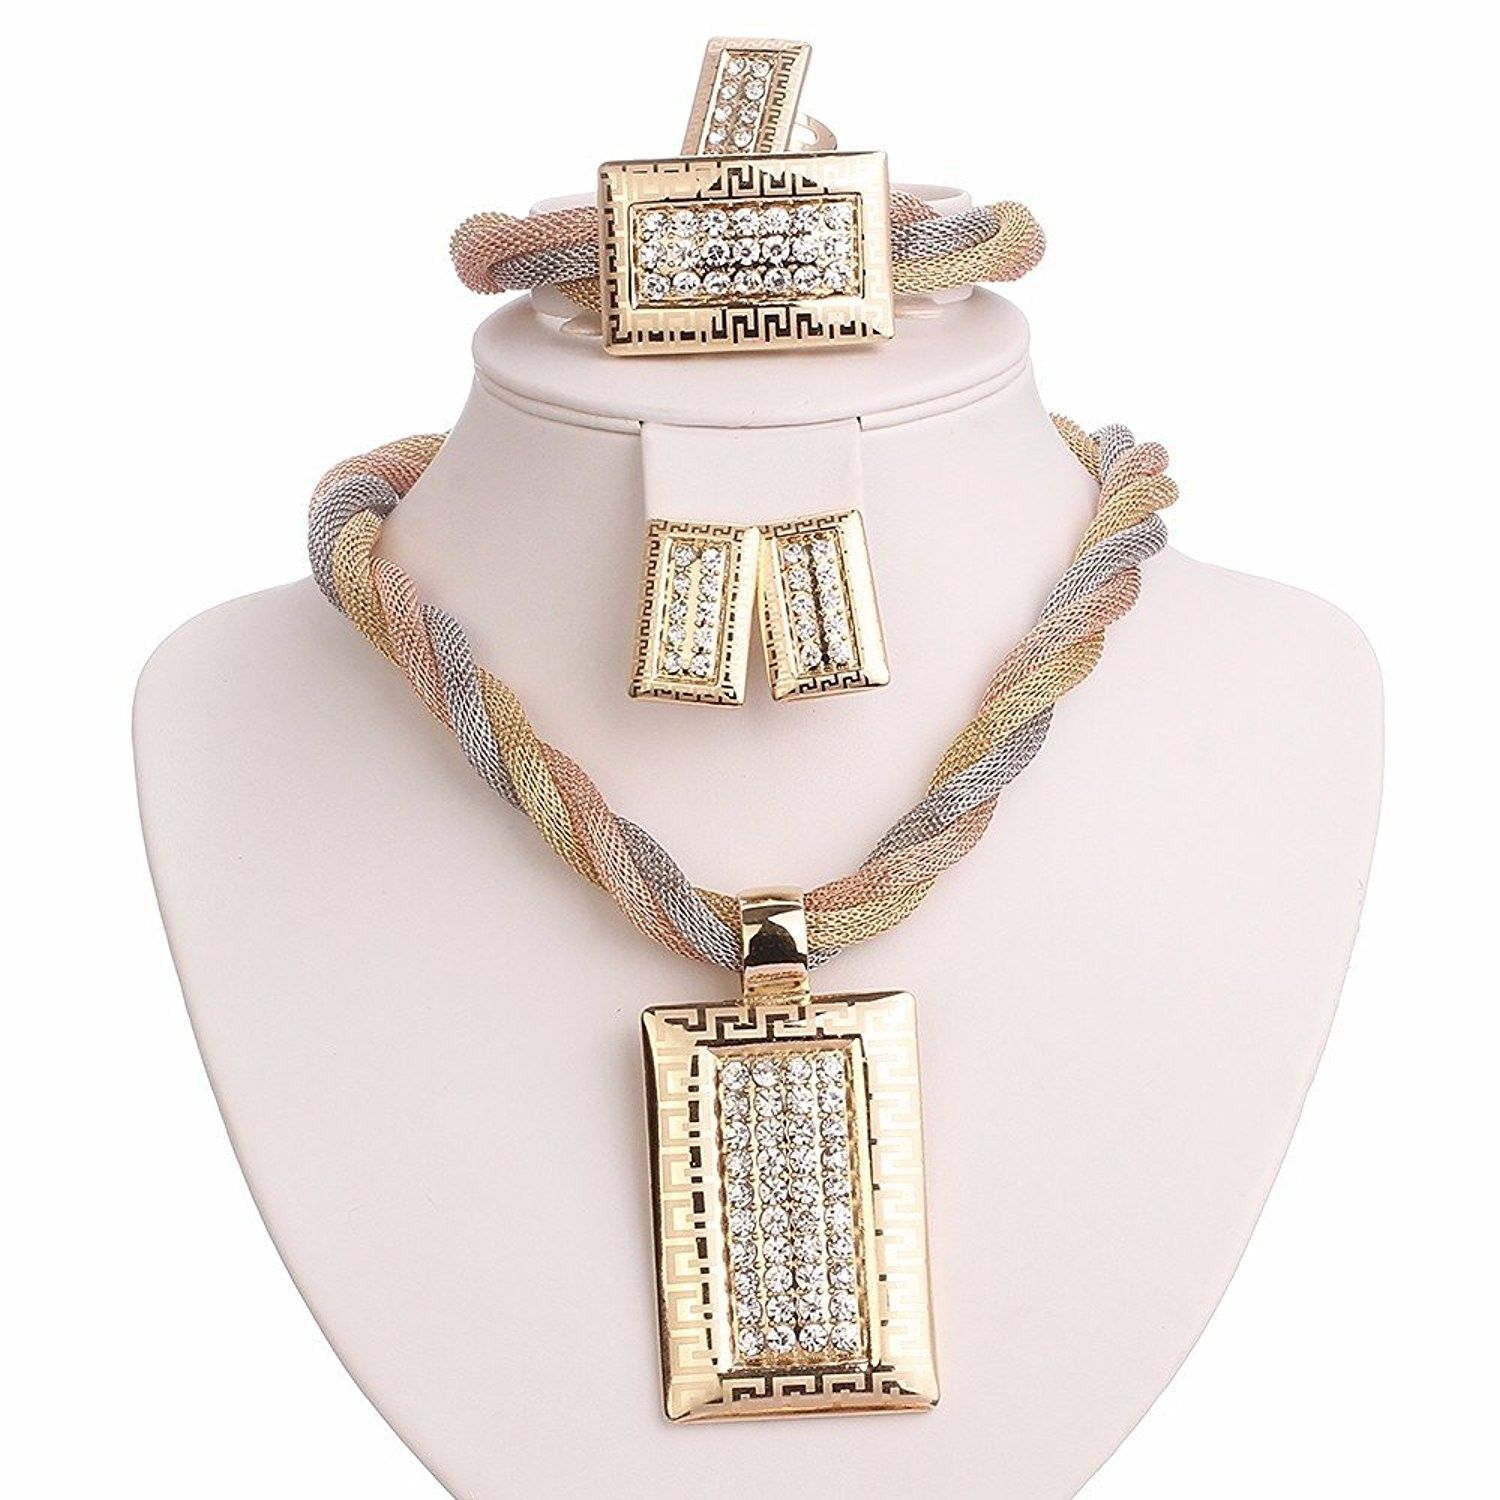 f2d4ab665e Gold Plated 3 Tones Chain Square Pendant Crystal Embedded Necklace ...